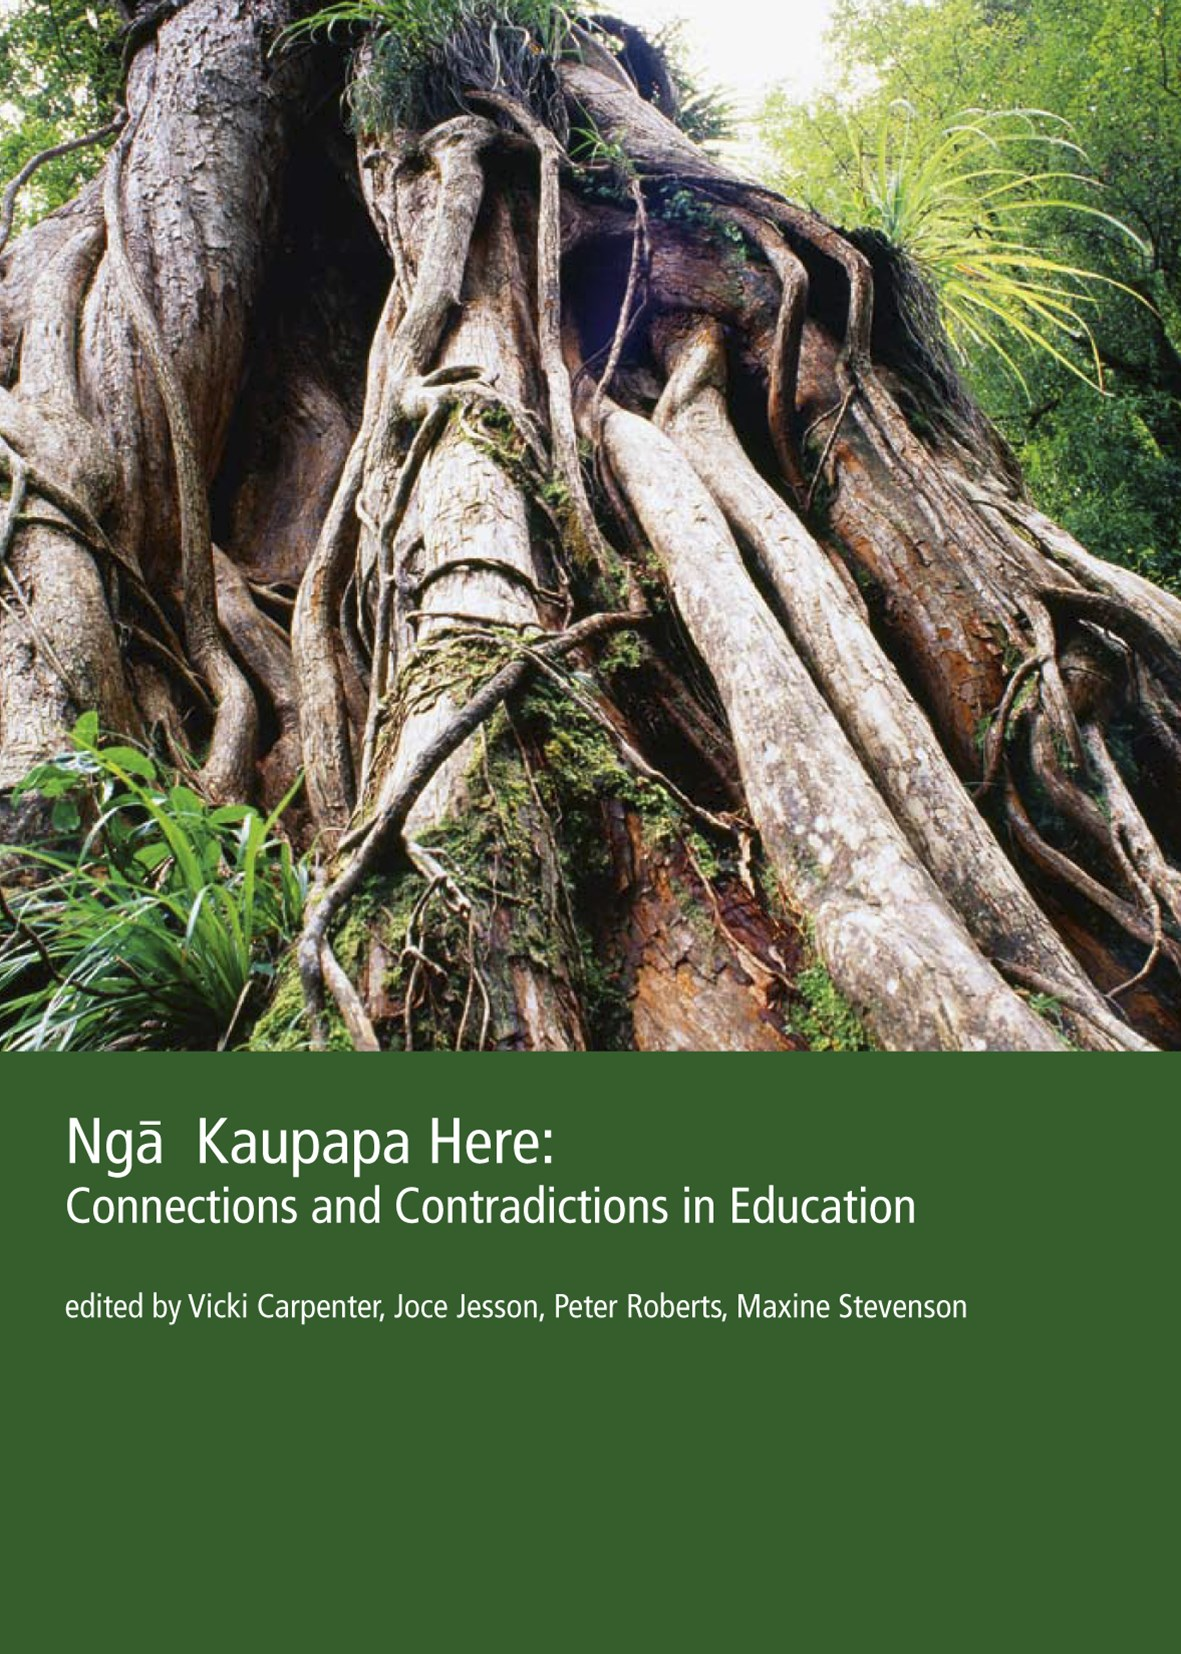 Ng  kaupapa here : Connections and Contradictions in Education